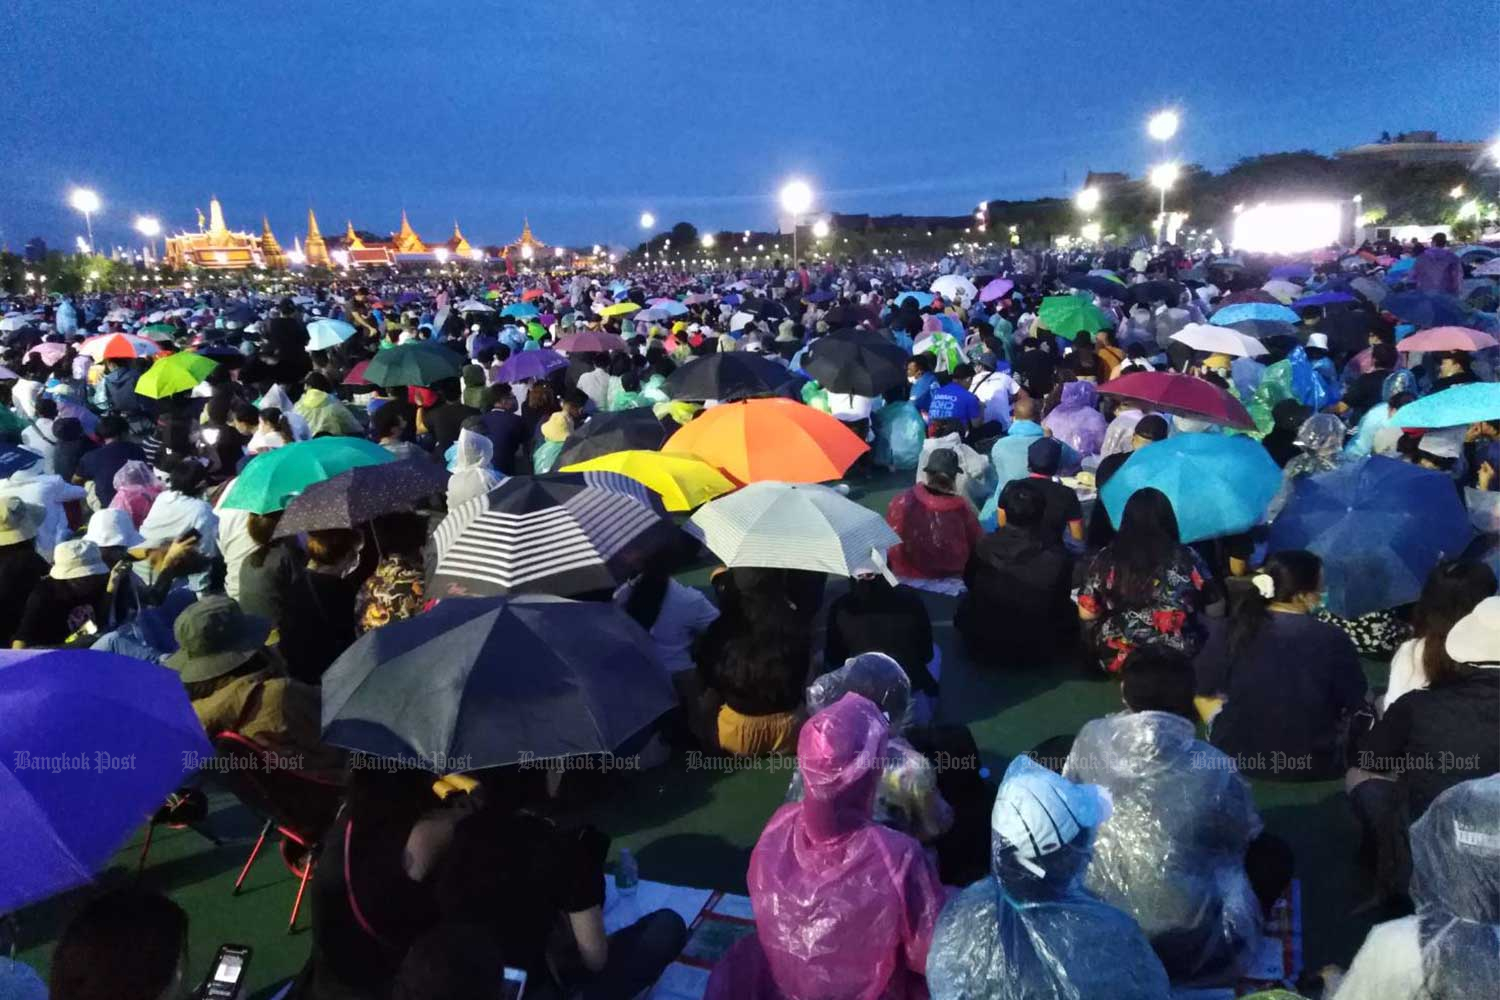 Demonstrators settle in on Saturday evening at Sanam Luang, where they were camping out ahead of a march planned for Sunday. (Photo by Apichit Jinakul)